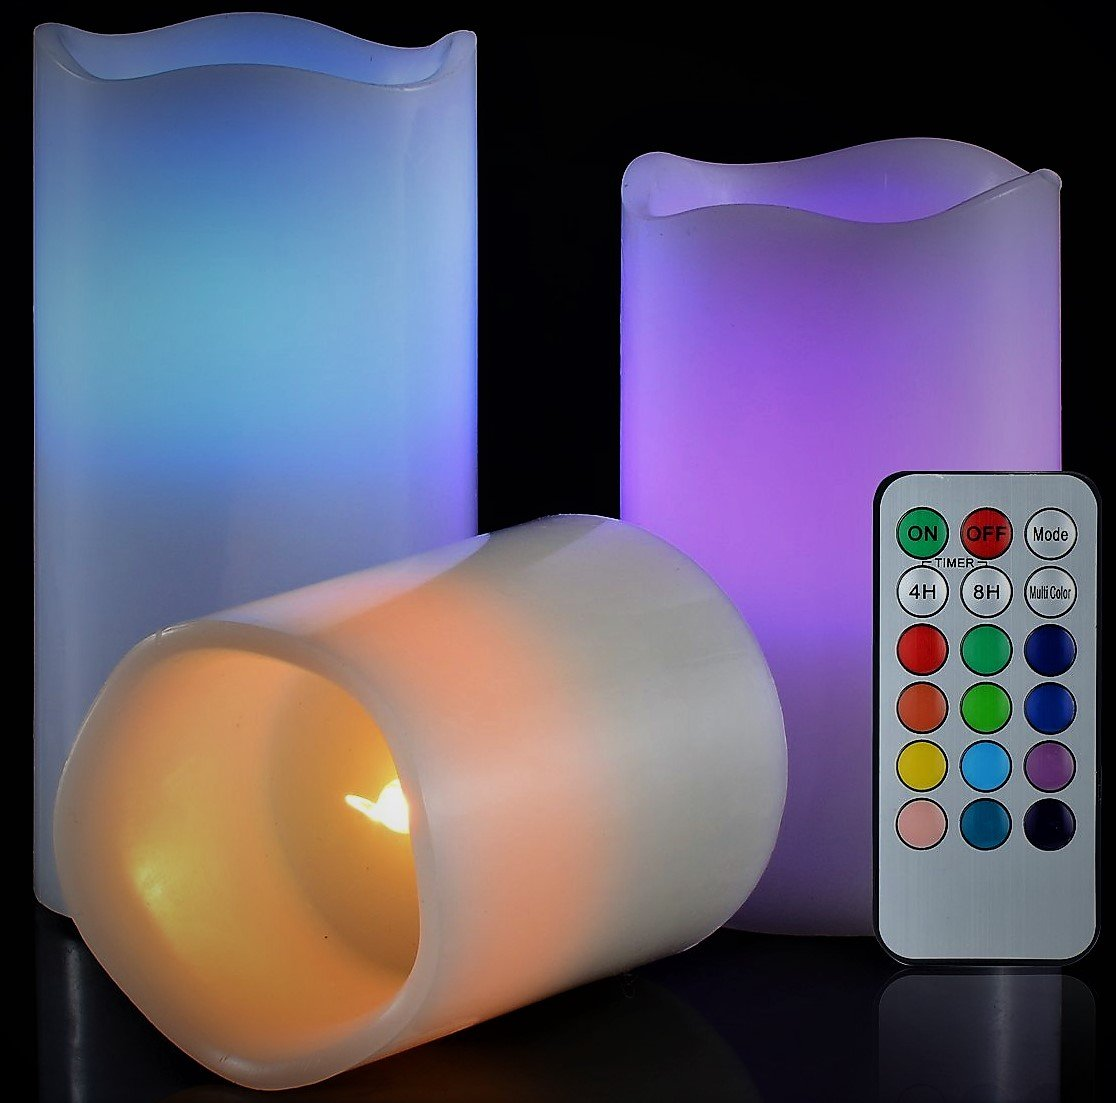 LED Lytes Flickering Flameless Candles - Battery Operated Candles Vanilla Scented Set of 3 Round Ivory Wax Flickering Multi Colored Flame, auto-Off Timer Remote Control Weddings Gifts by LED Lytes (Image #3)